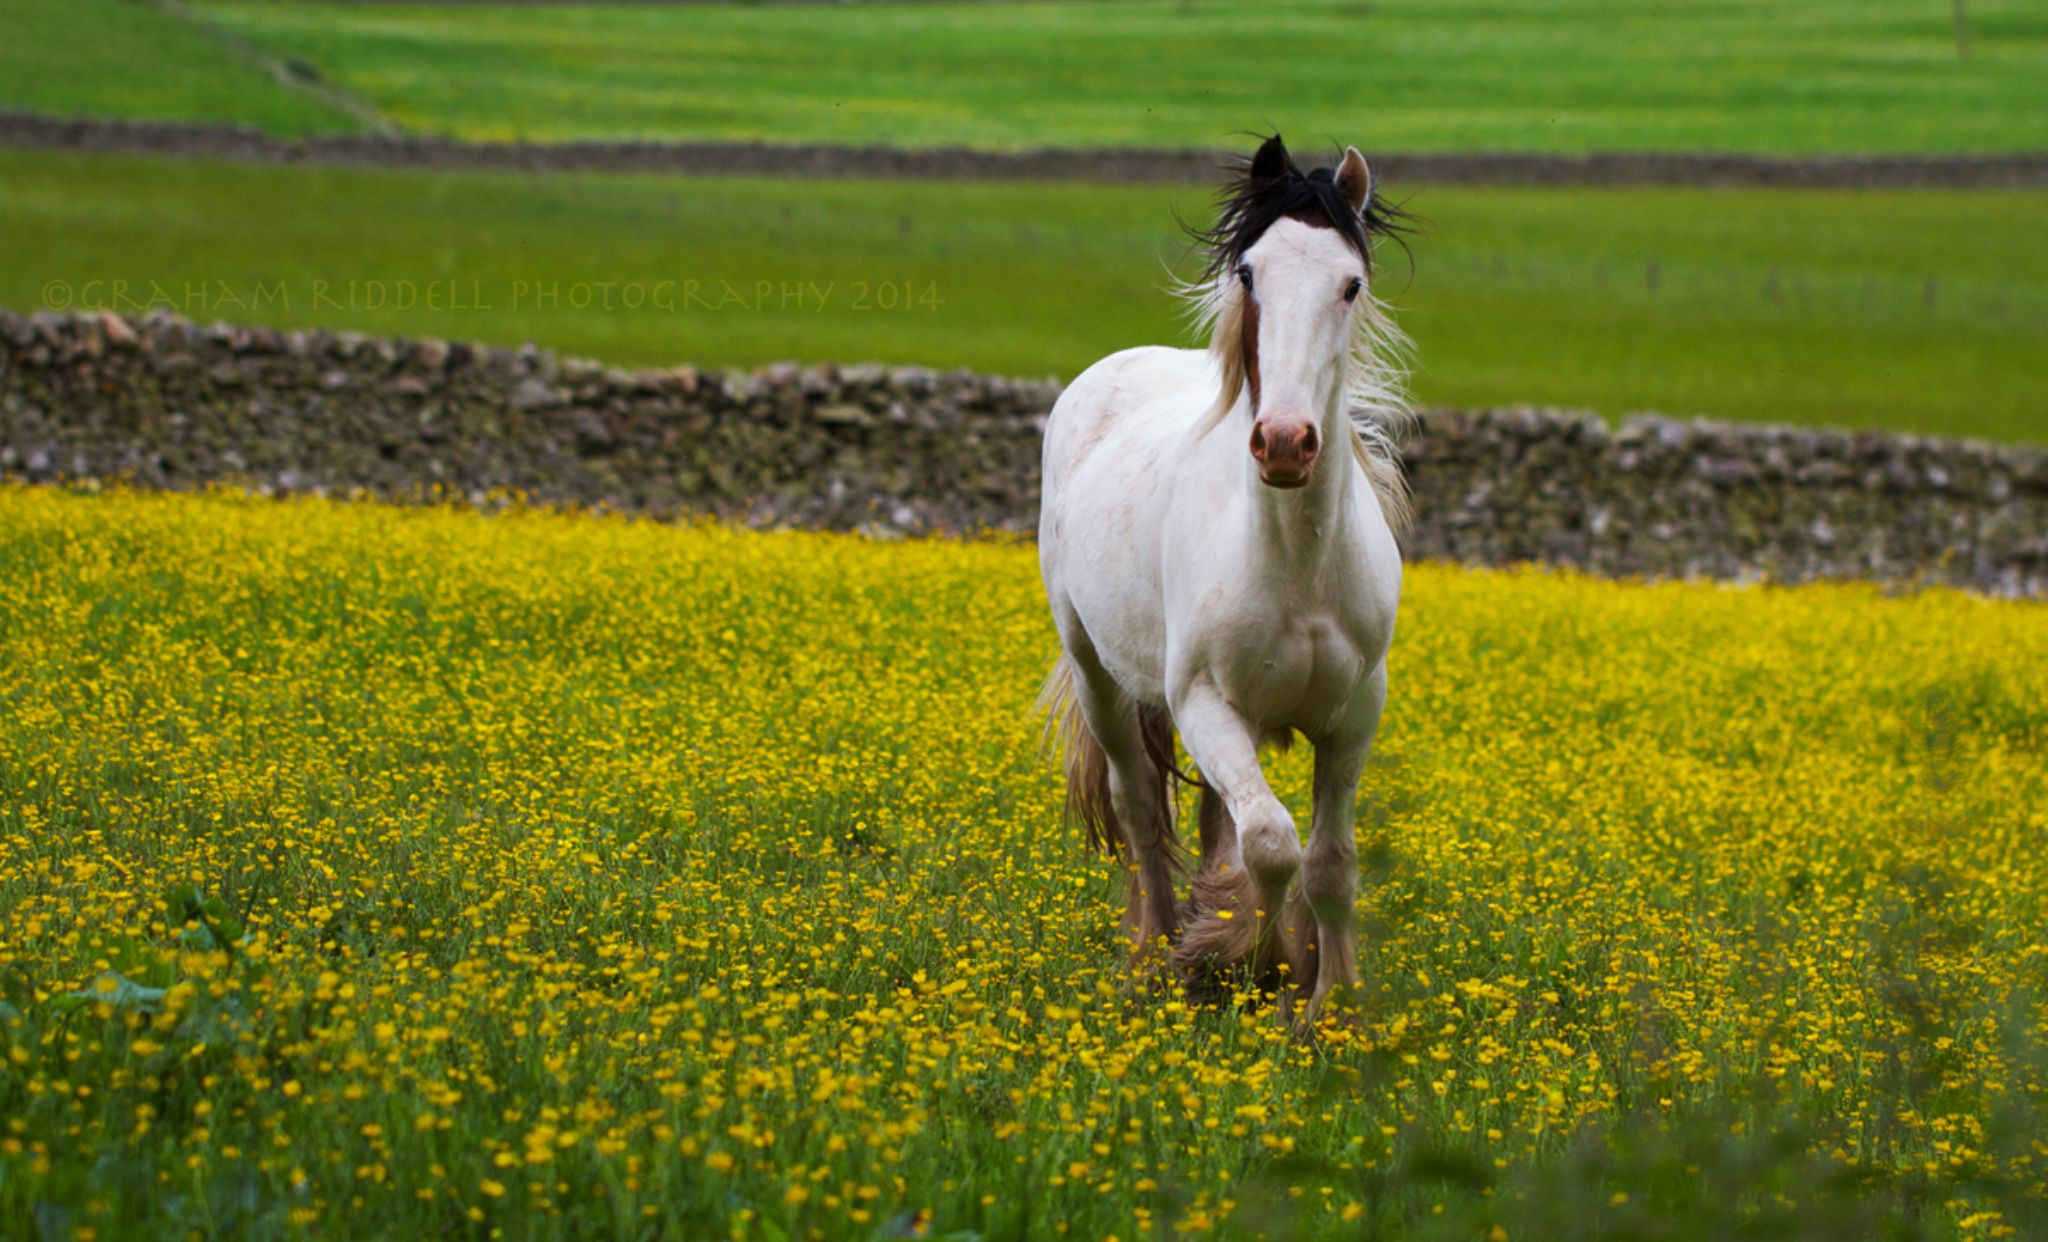 Buttercup Trot_1552 copy by GrahamJRiddell